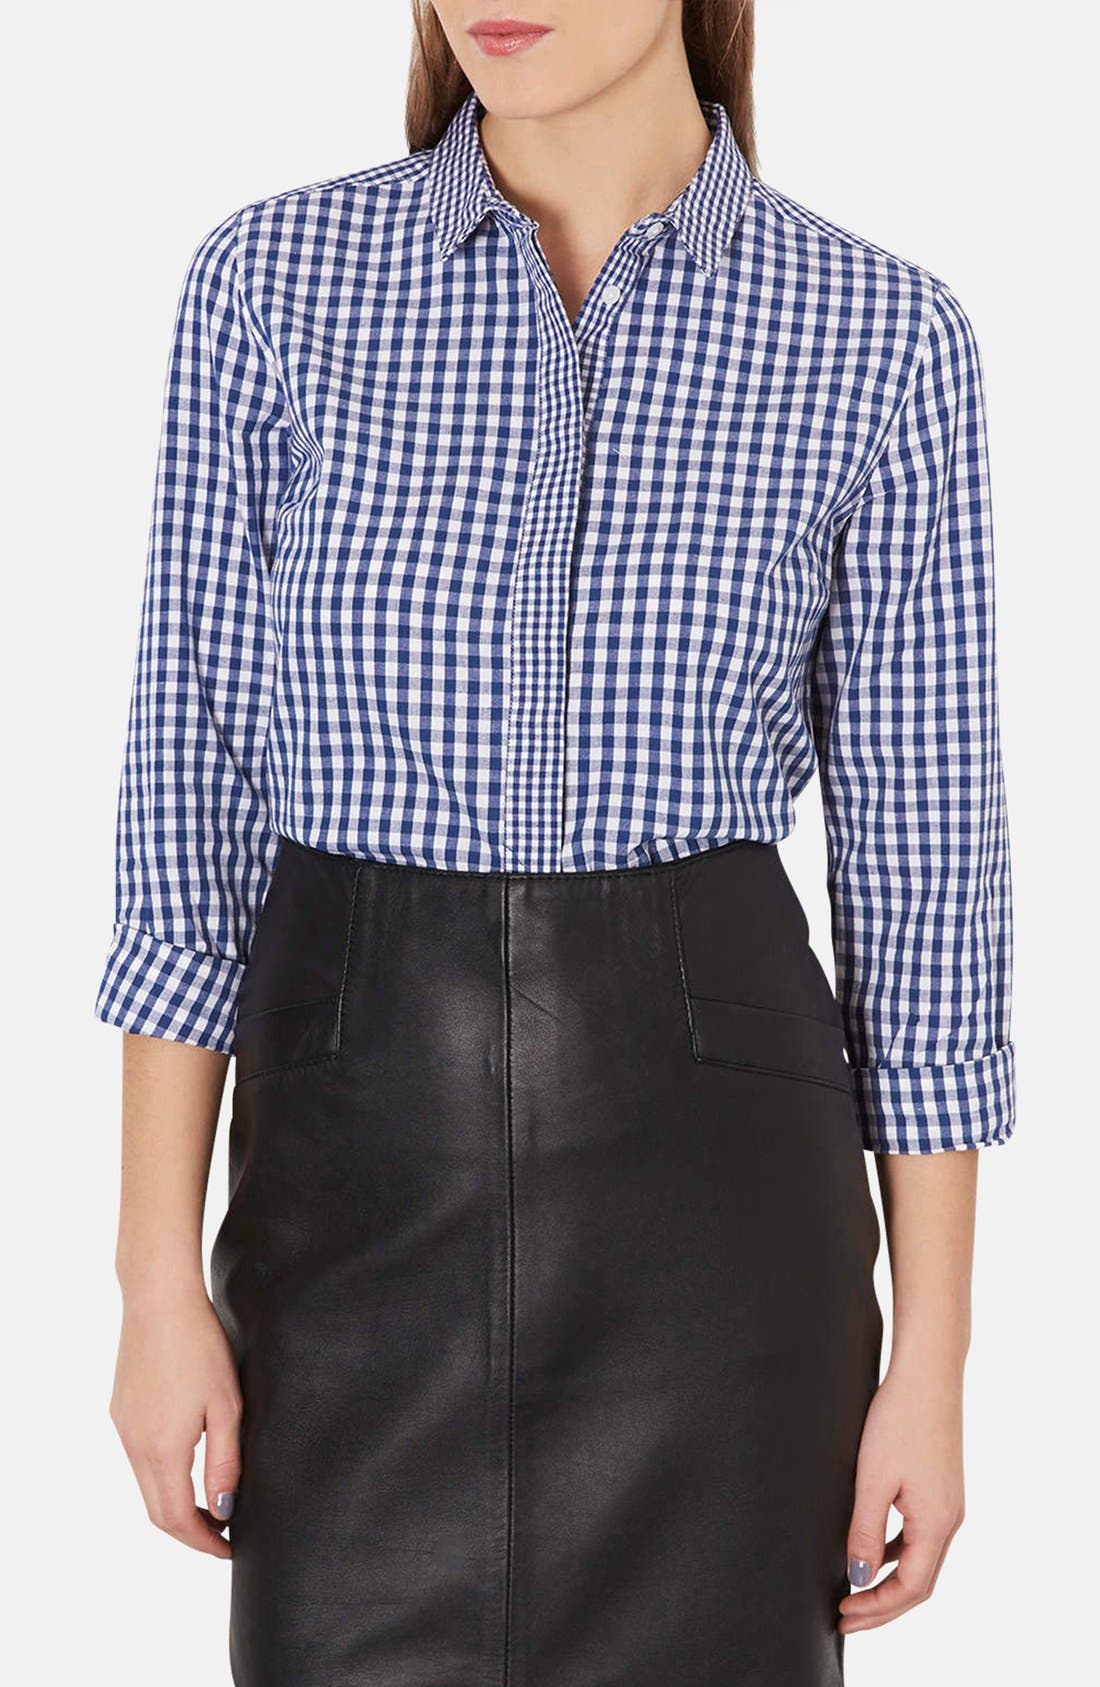 Main Image - Topshop Mix Gingham Print Cotton Shirt